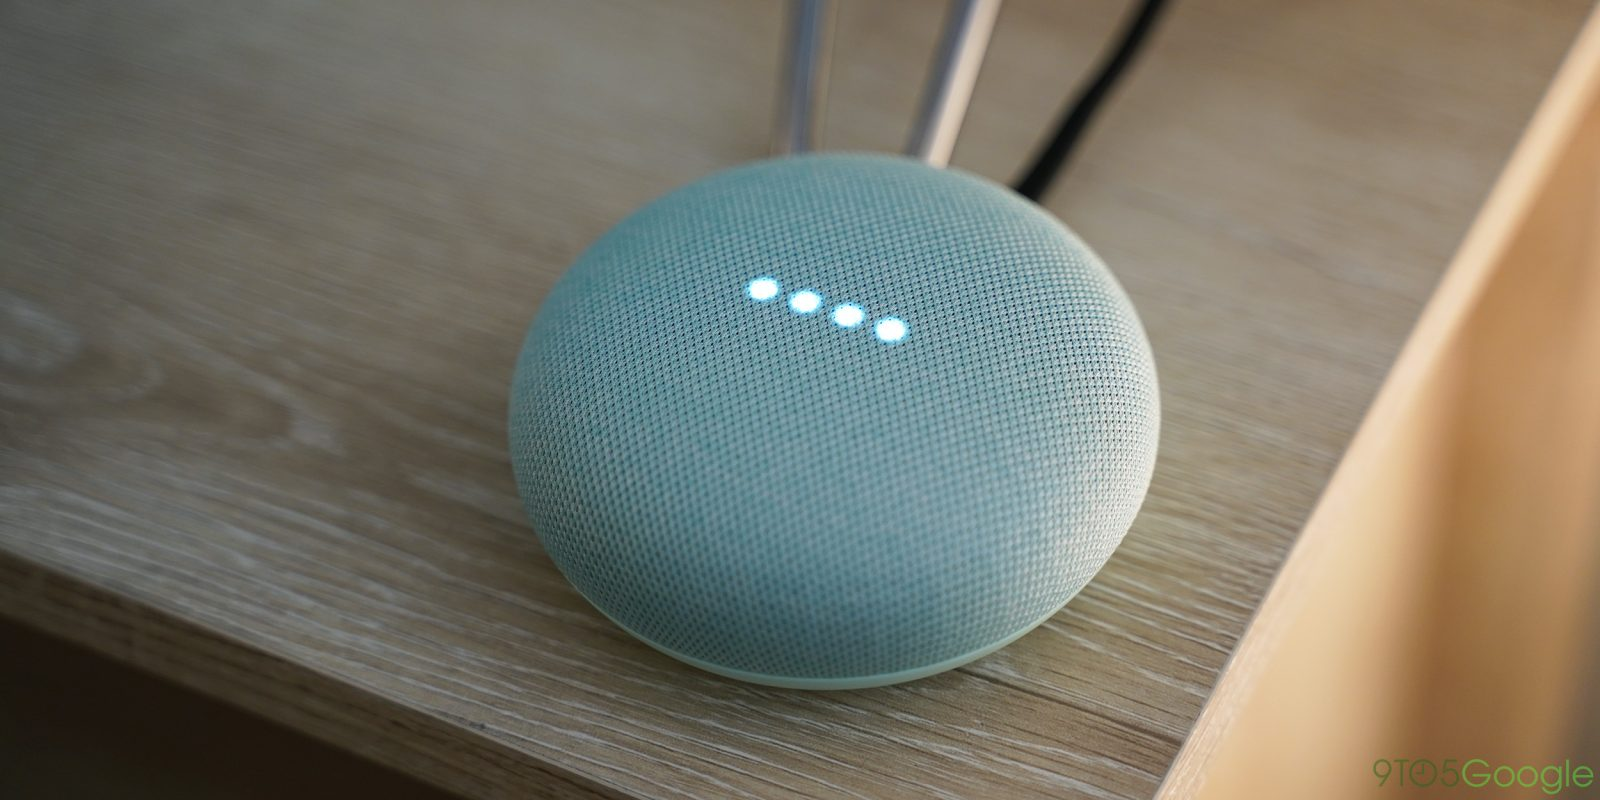 Google Assistant Tops Siri and Alexa in 'Smart Speaker IQ' Test, but by a Closing Margin